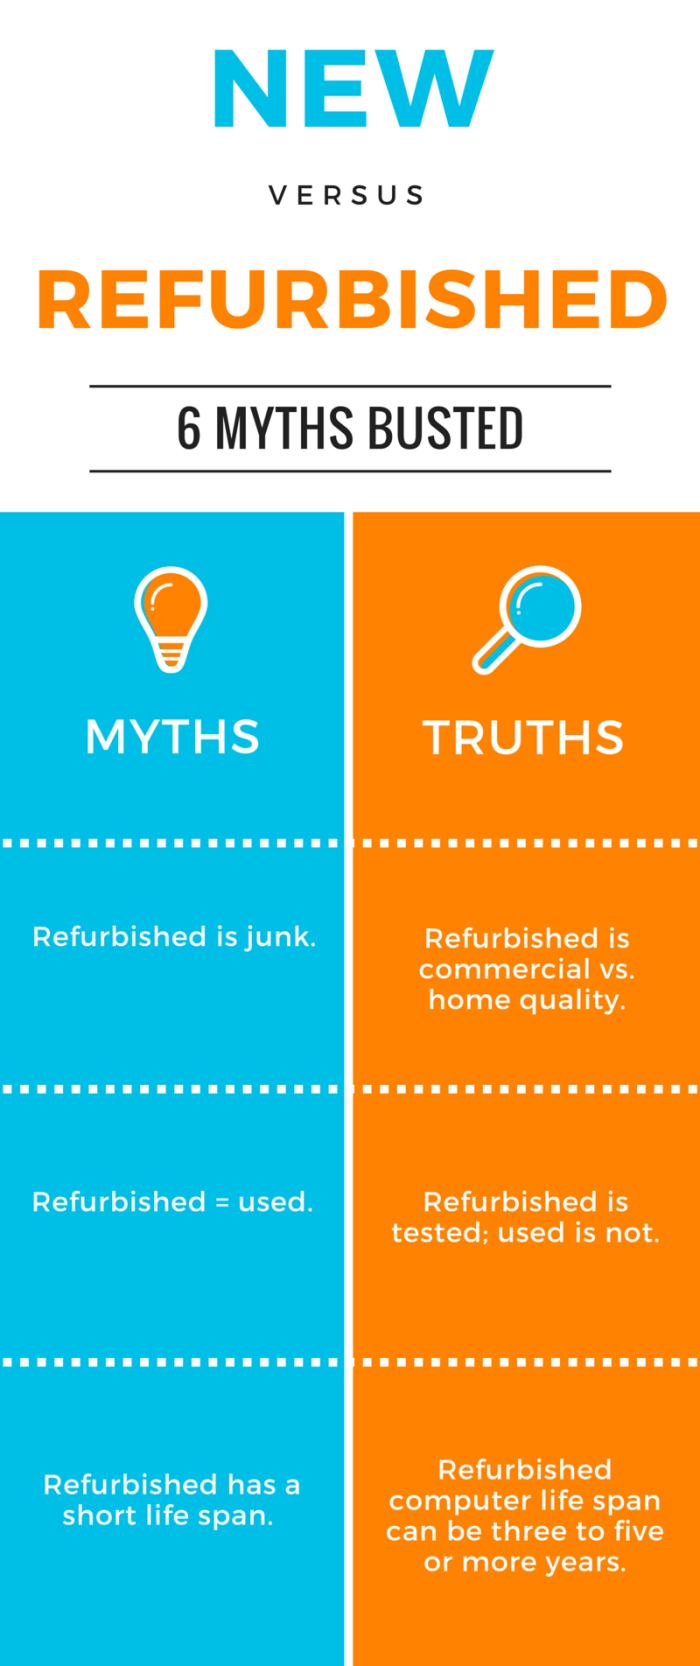 Myth: refurbished is junk. Truth: Refurbished is commercial vs. home quality. Myth: Refurbished = used. Truth: Refurbished is tested; used is not. Myth: Refurbished has a short life span. Truth: Refurbished computer life span can be three to five or more years.